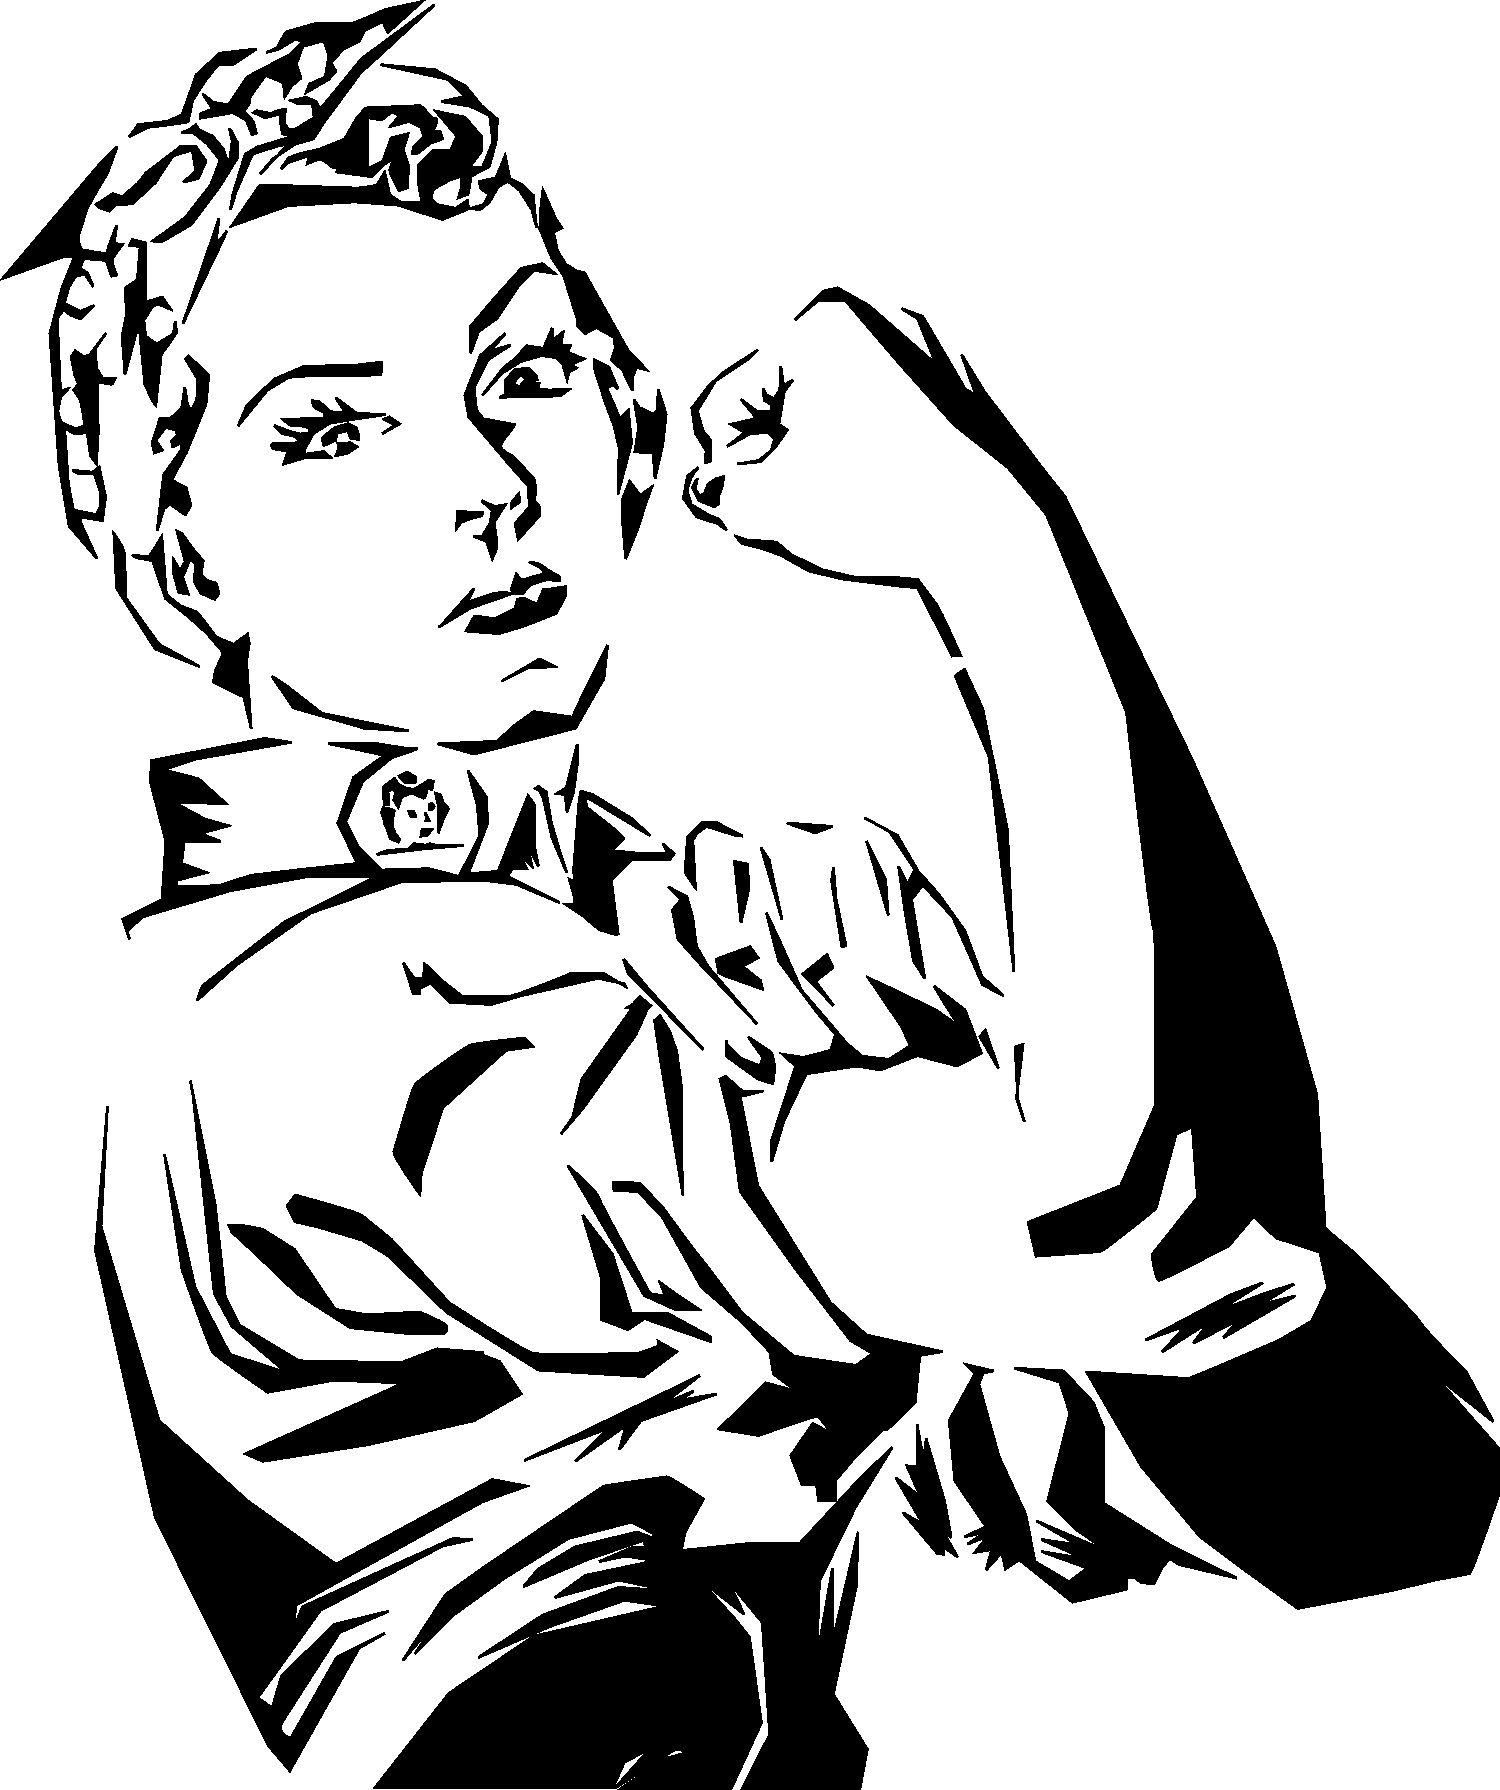 32 Rosie The Riveter Coloring Page Colorir Best Coloring Pages Rosie The Riveter Planet Coloring Pages